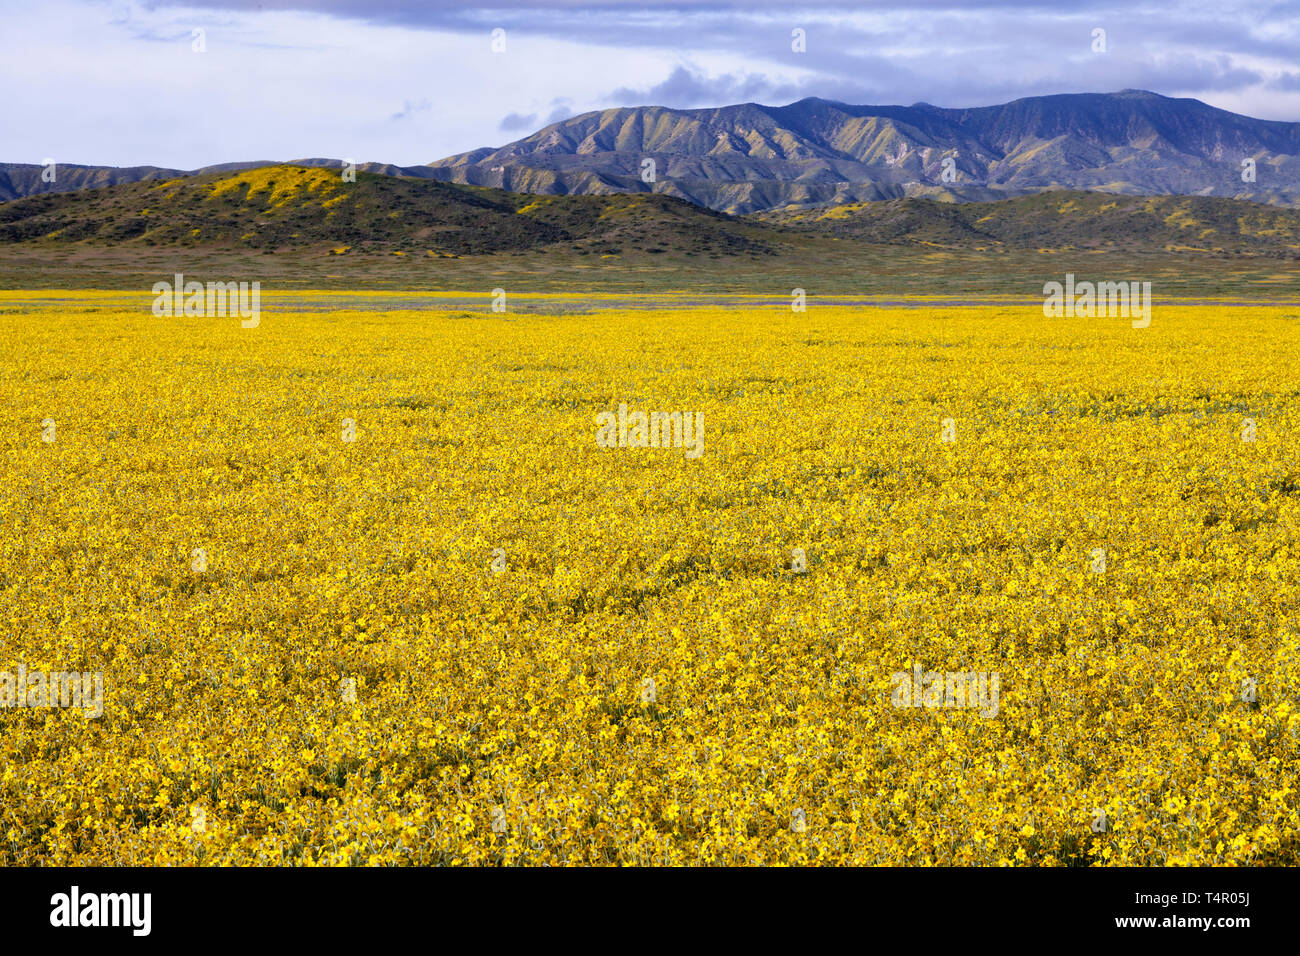 Goldfields at bloom in the valley below the Caliente Range on the Carrizo Plain in California. - Stock Image